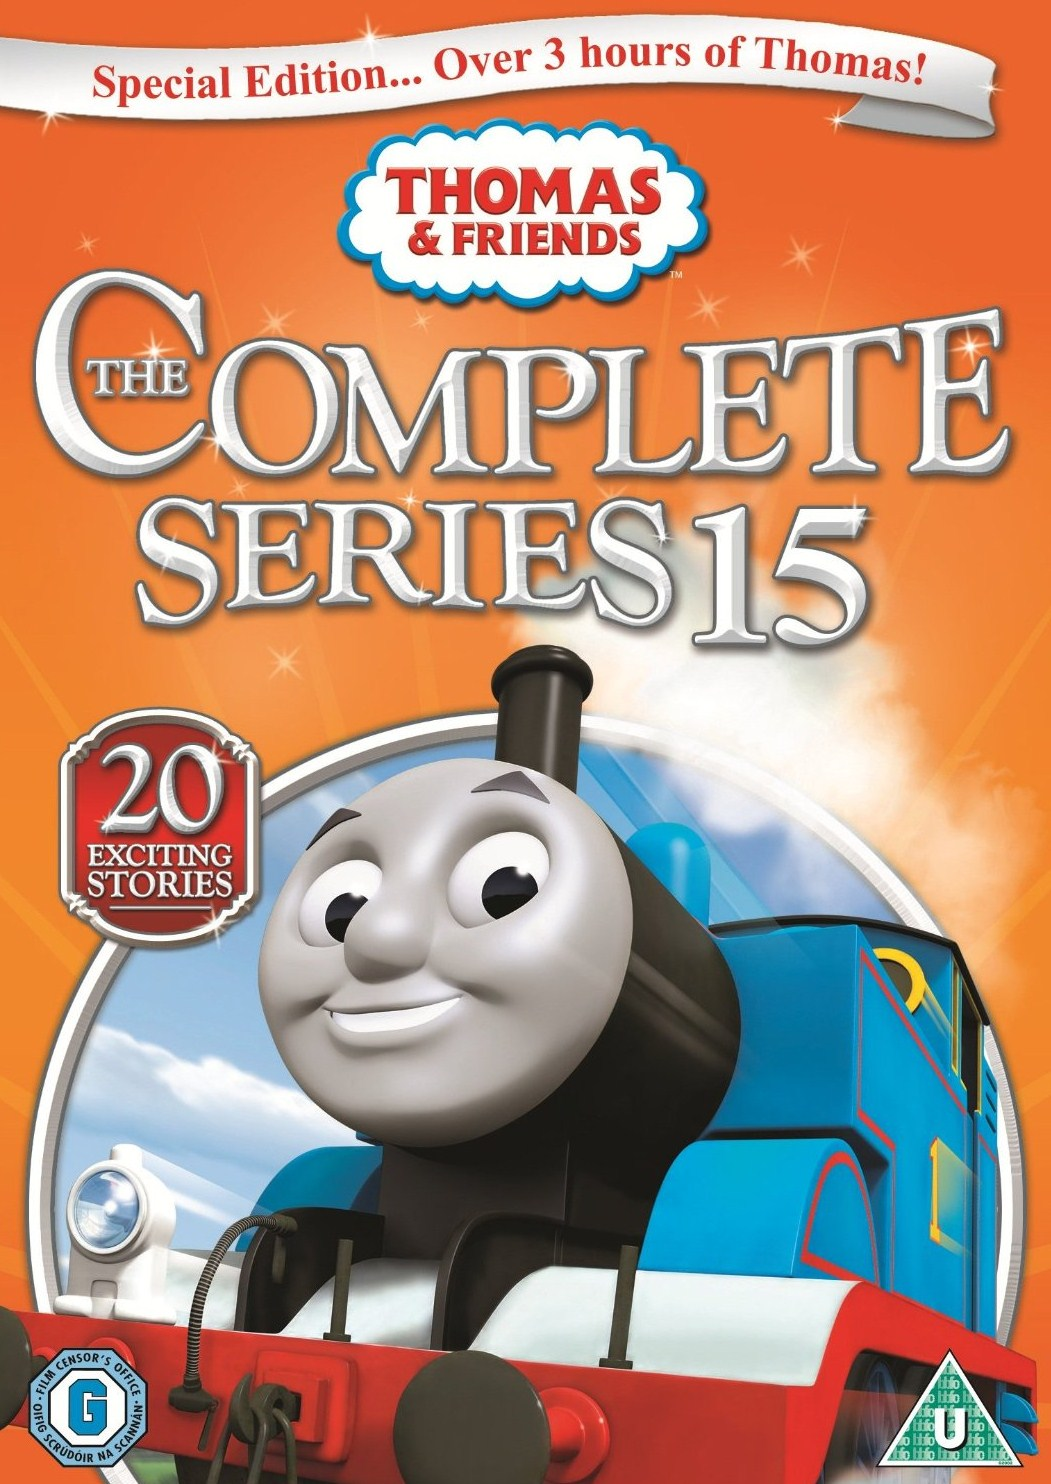 The Complete Series 15